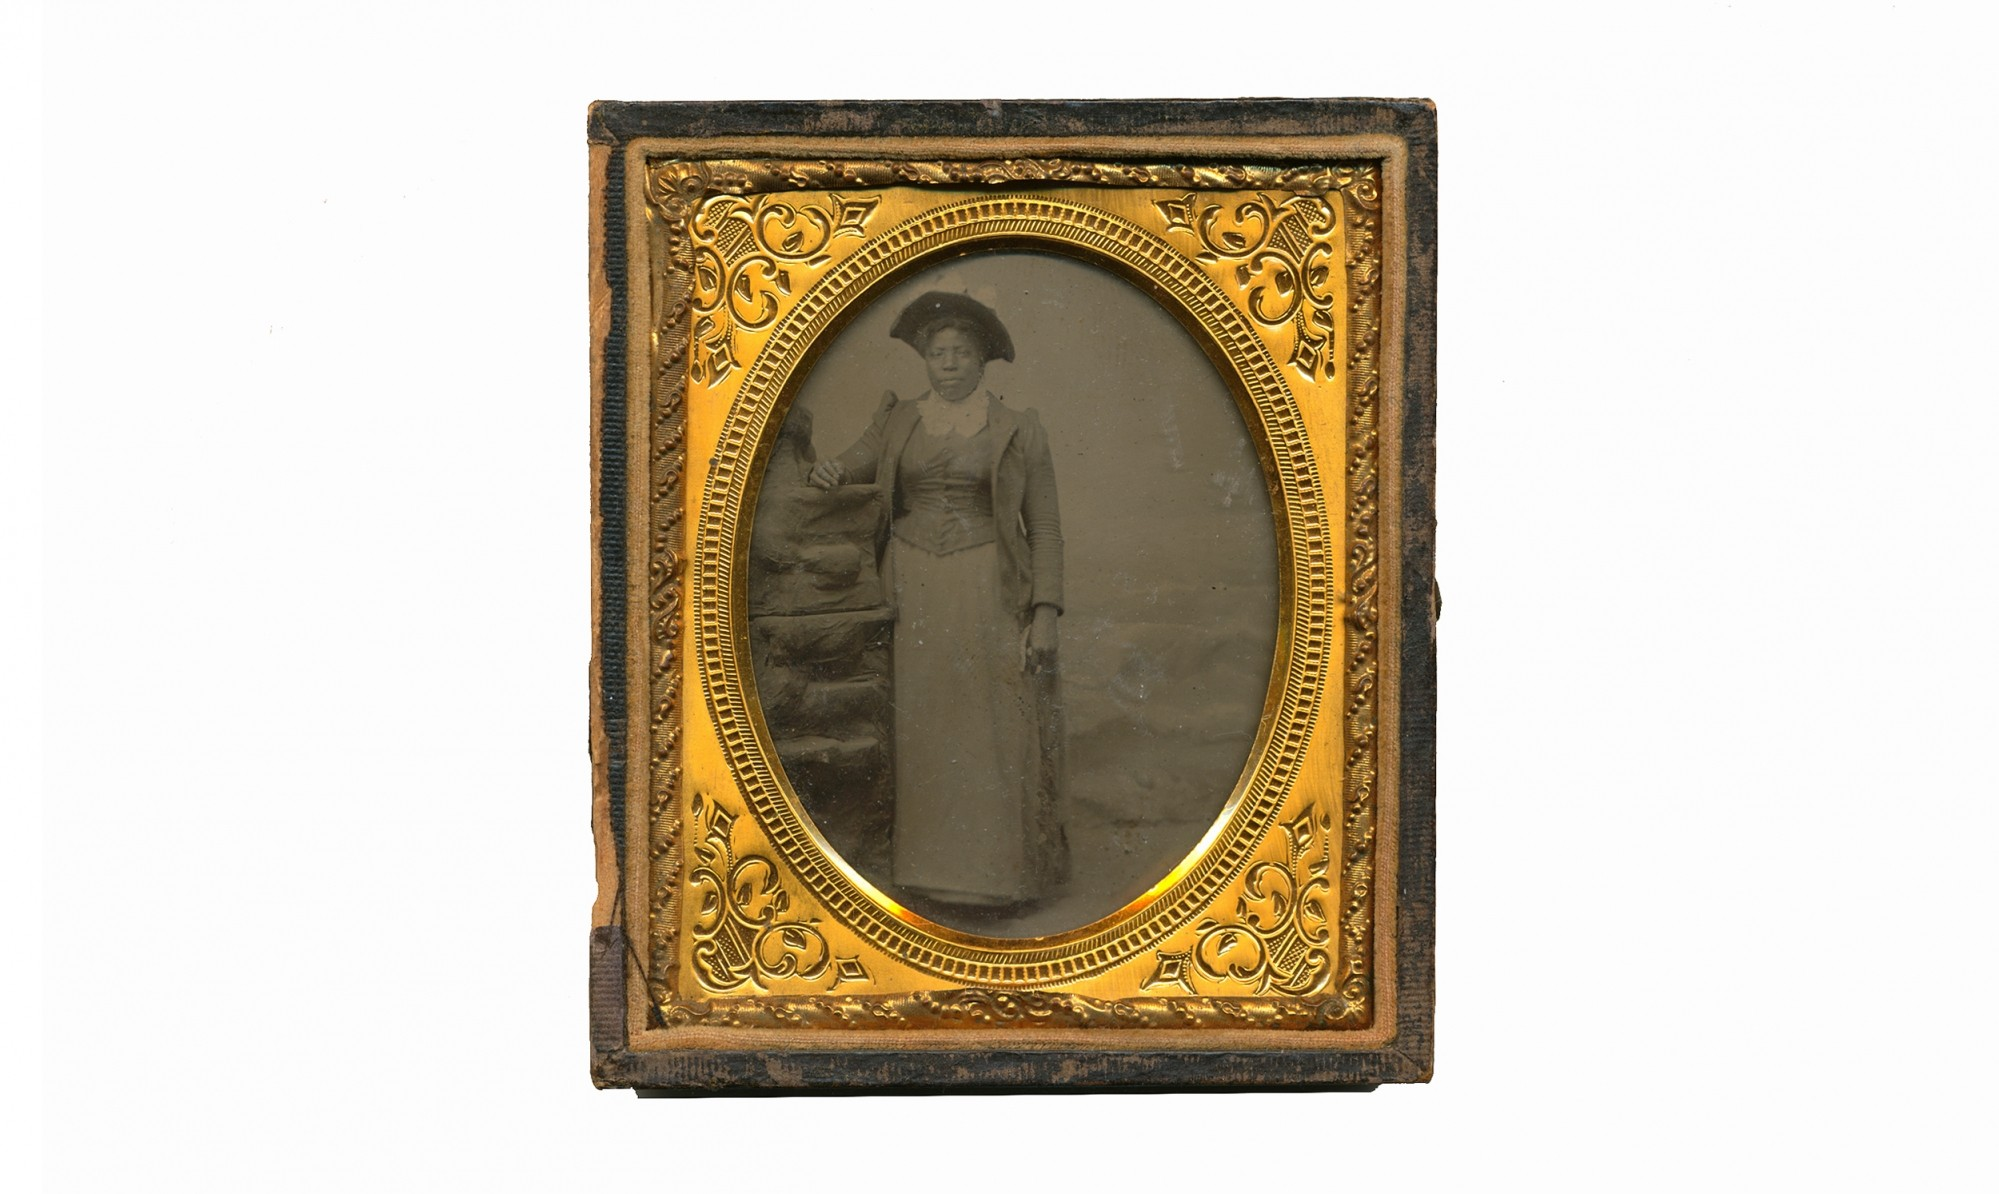 SIXTH PLATE TINTYPE OF A YOUNG AFRICAN AMERICAN WOMAN